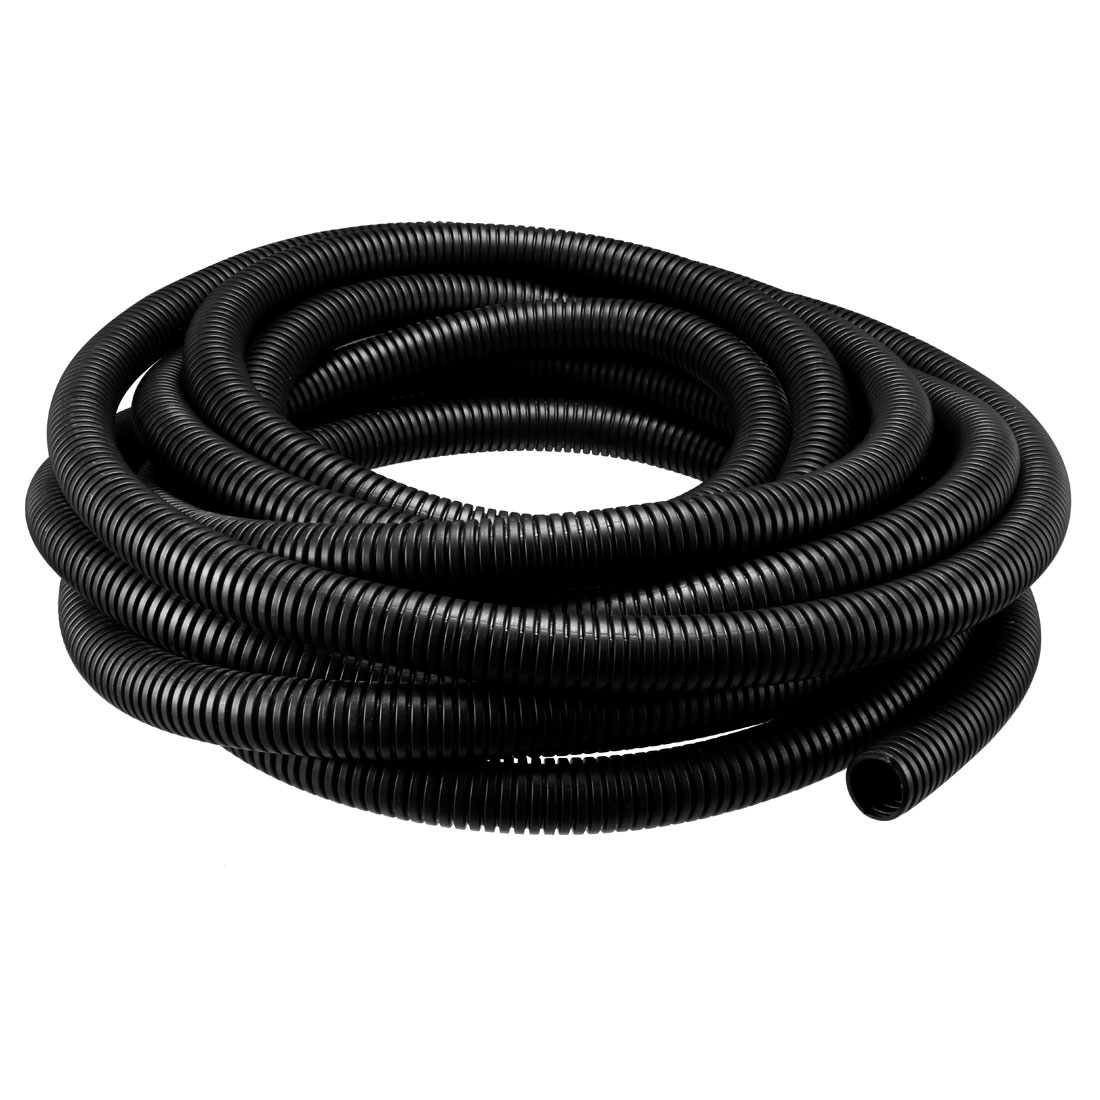 9M 25mm Outside Dia Corrugated Bellow Conduit Tube for Electric Wiring Black